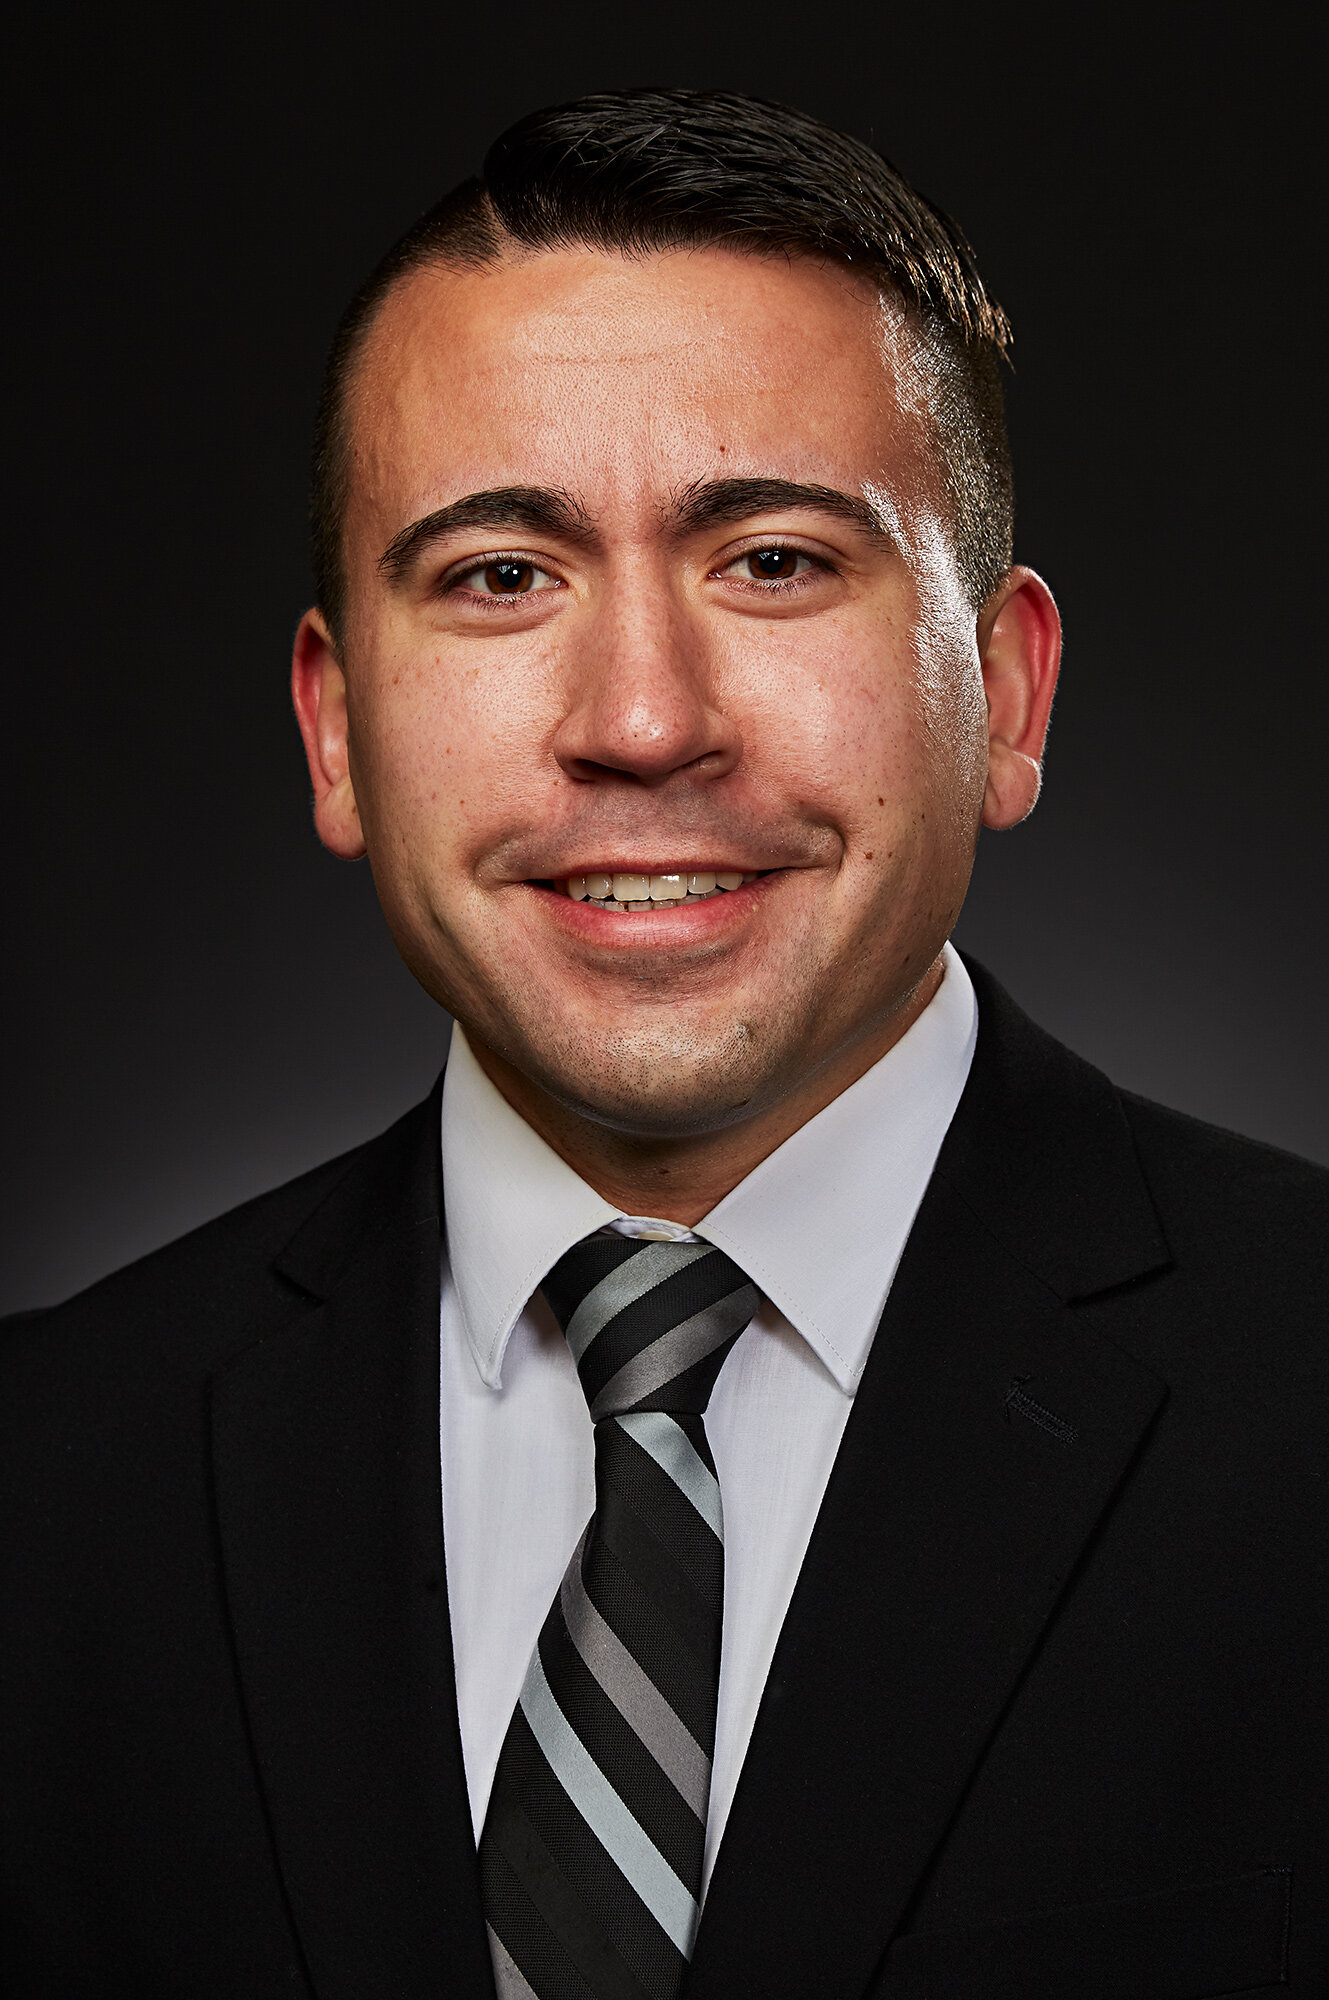 Zach Carvalho - Equity Research Specialist